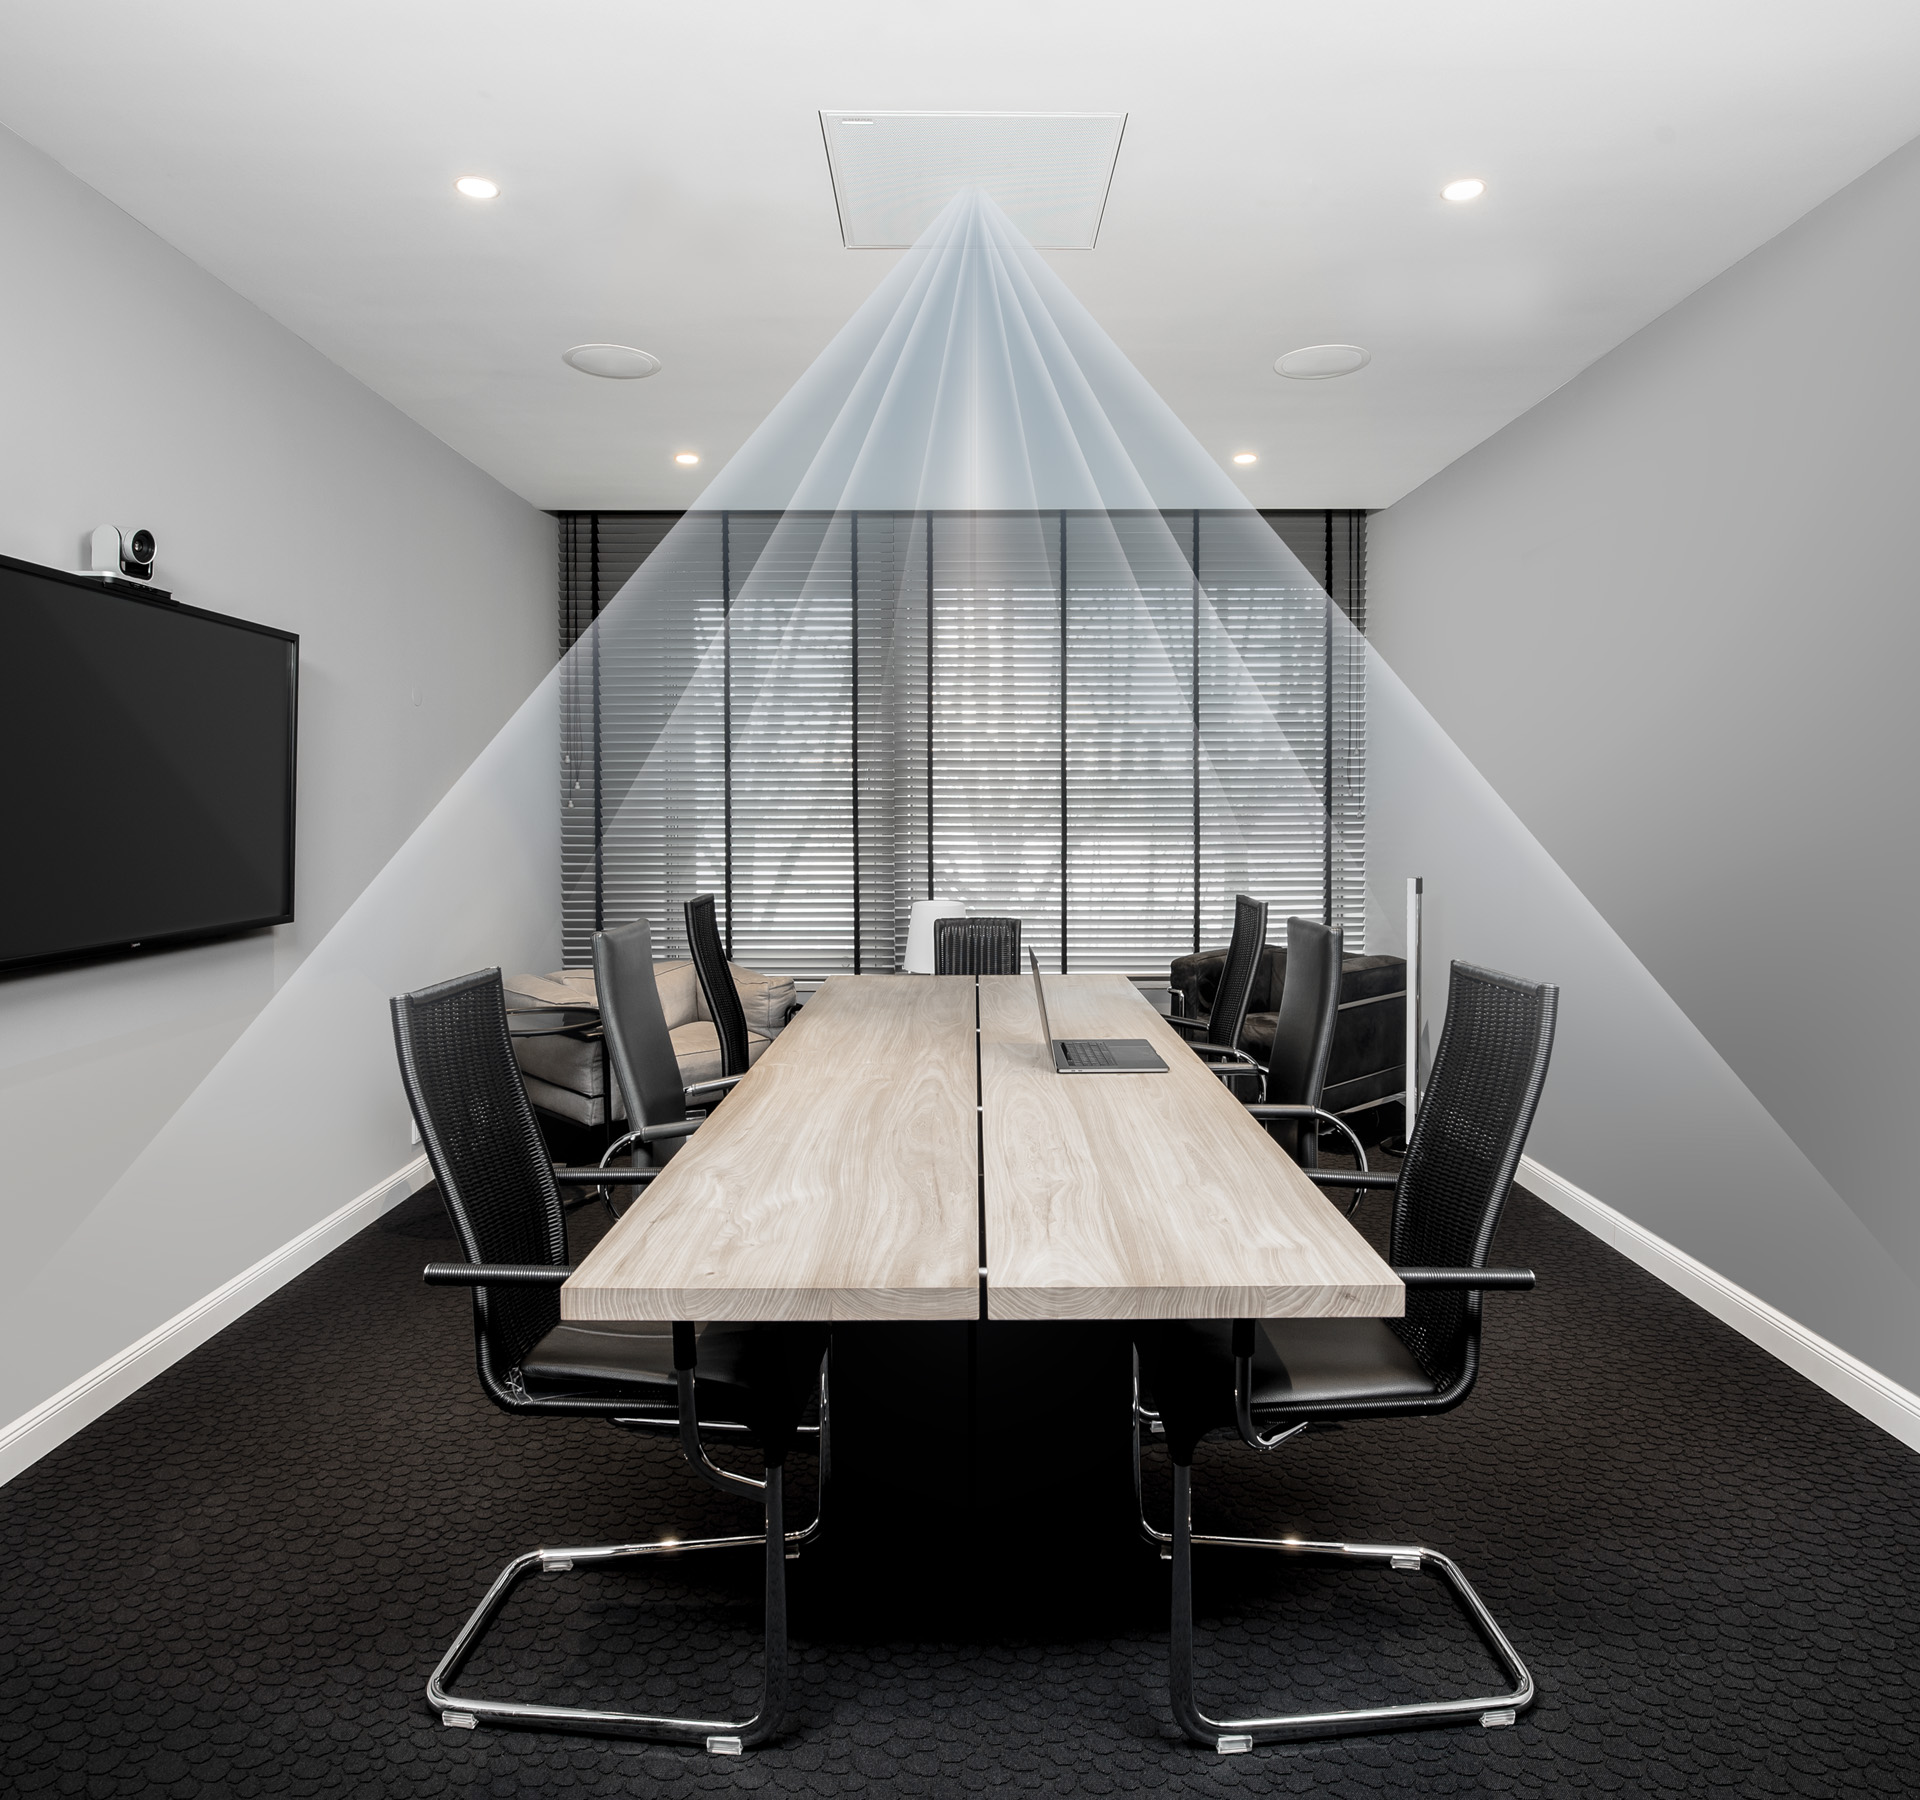 Informm 2019 Seminar: Designing Large Meeting Room Voice-Lift Systems